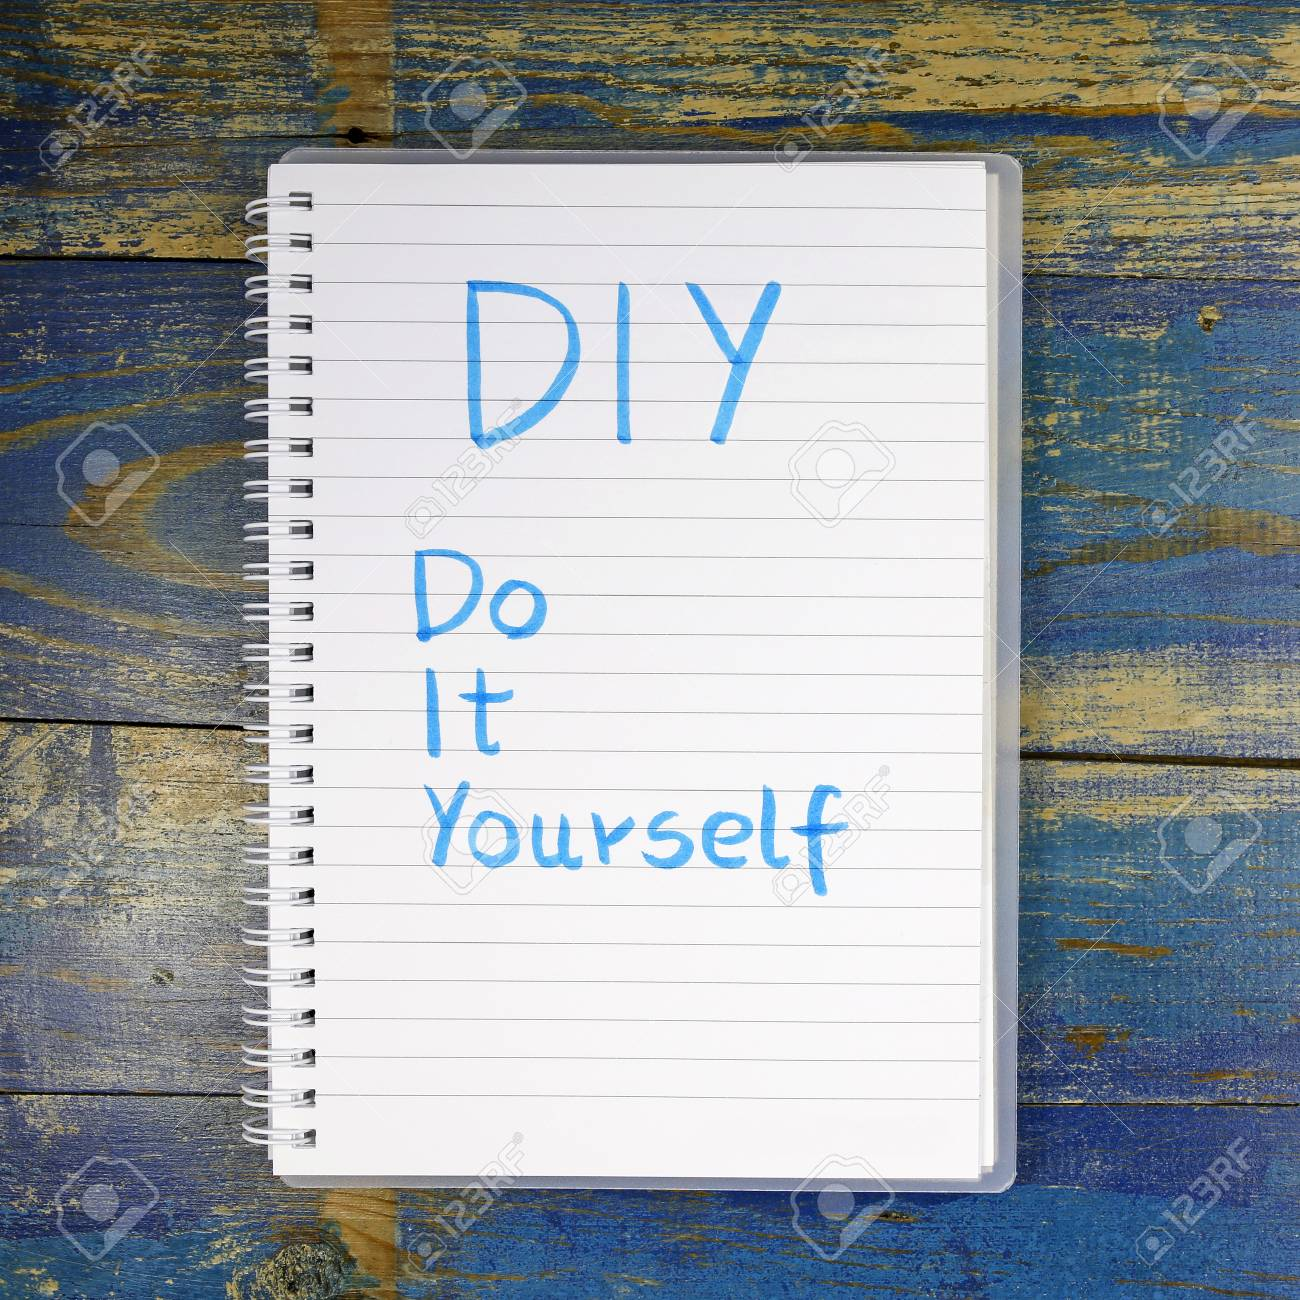 Diy do it yourself written in a notebook on wooden background stock diy do it yourself written in a notebook on wooden background stock photo 63626477 solutioingenieria Images